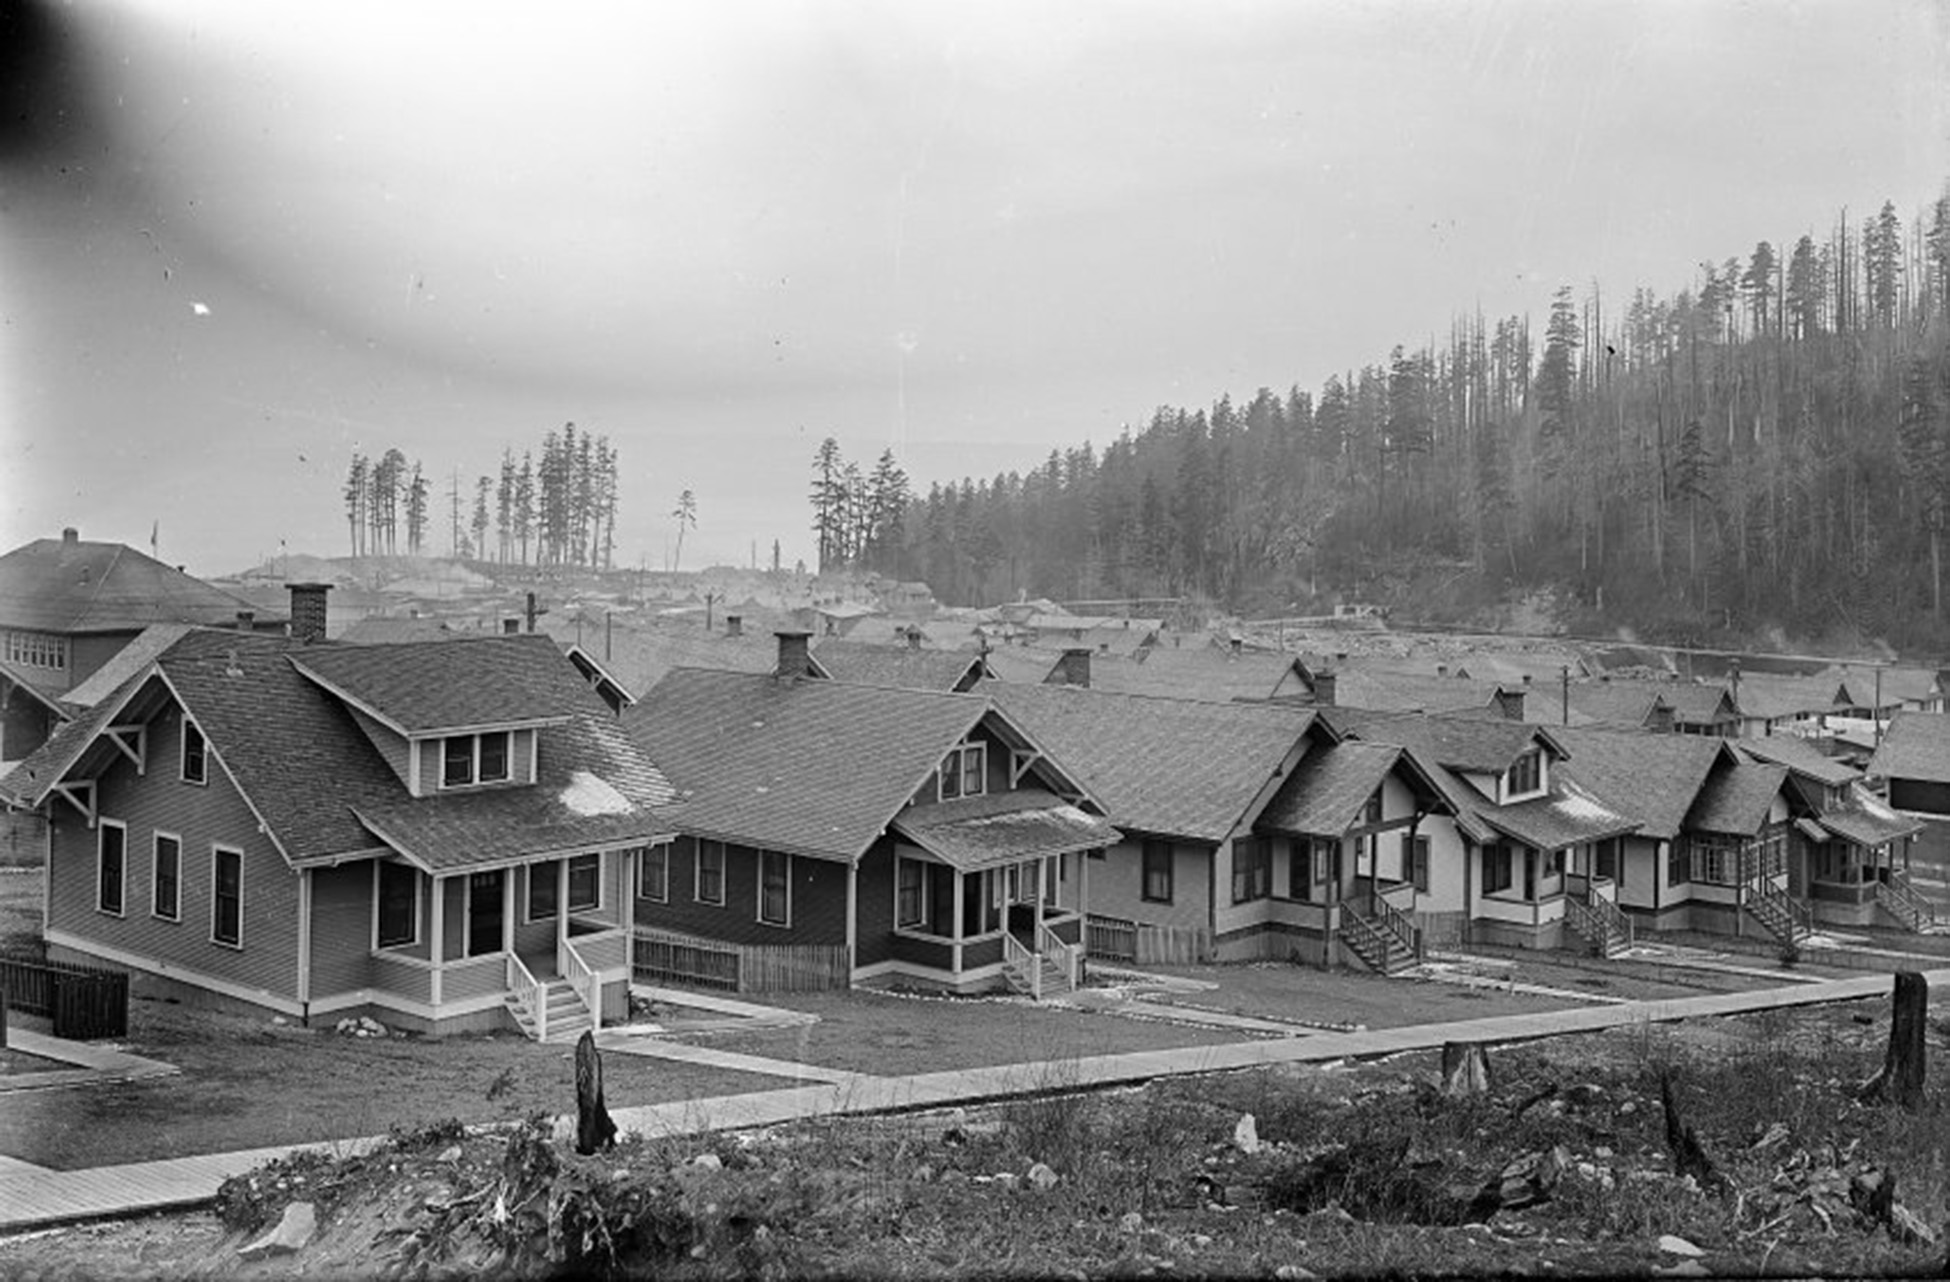 Powell River Townsite Cedar Street 200 block showing Craftsman style homes built by the Powell River Company.